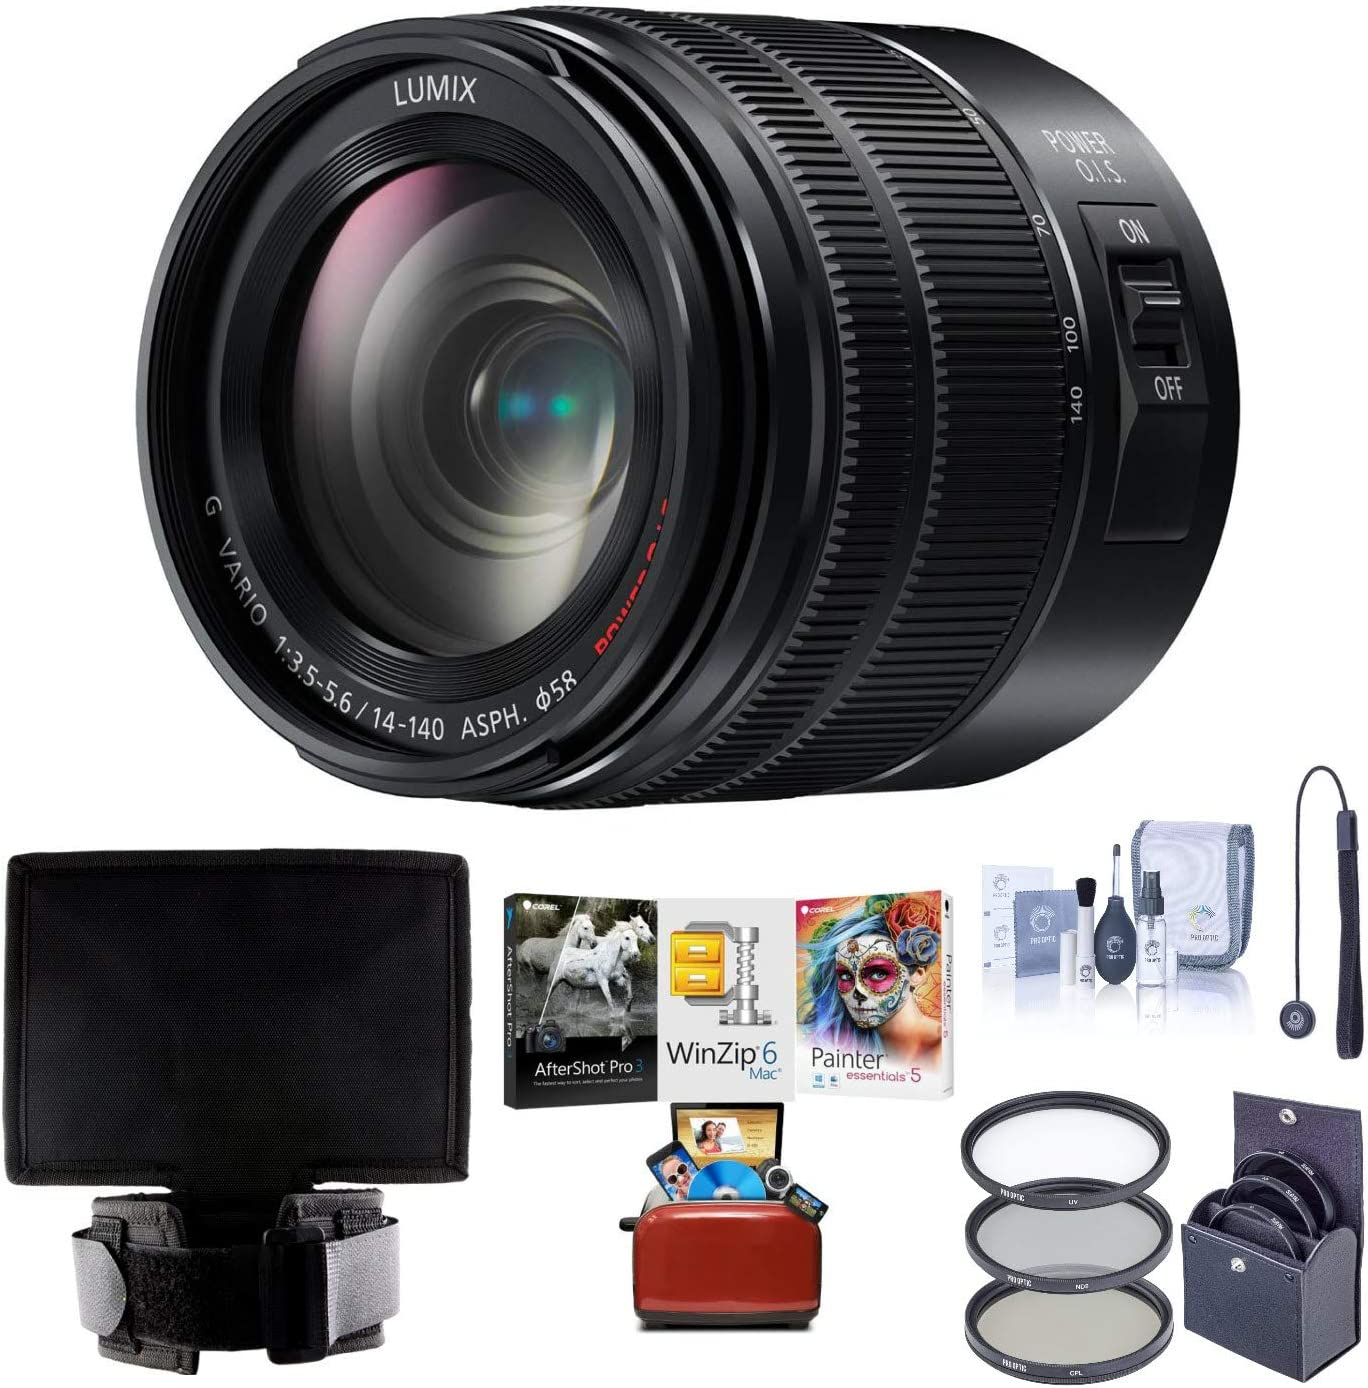 Panasonic Lumix G Vario 14-140mm Telephoto Zoom Lens with F3.5-5.6 II ASPH, Mirrorless Micro Four Thirds, Power O.I.S. - H-FSA14140 (Upgraded) Bundle with Filter Kit, Lens Shade, Mac Software + More